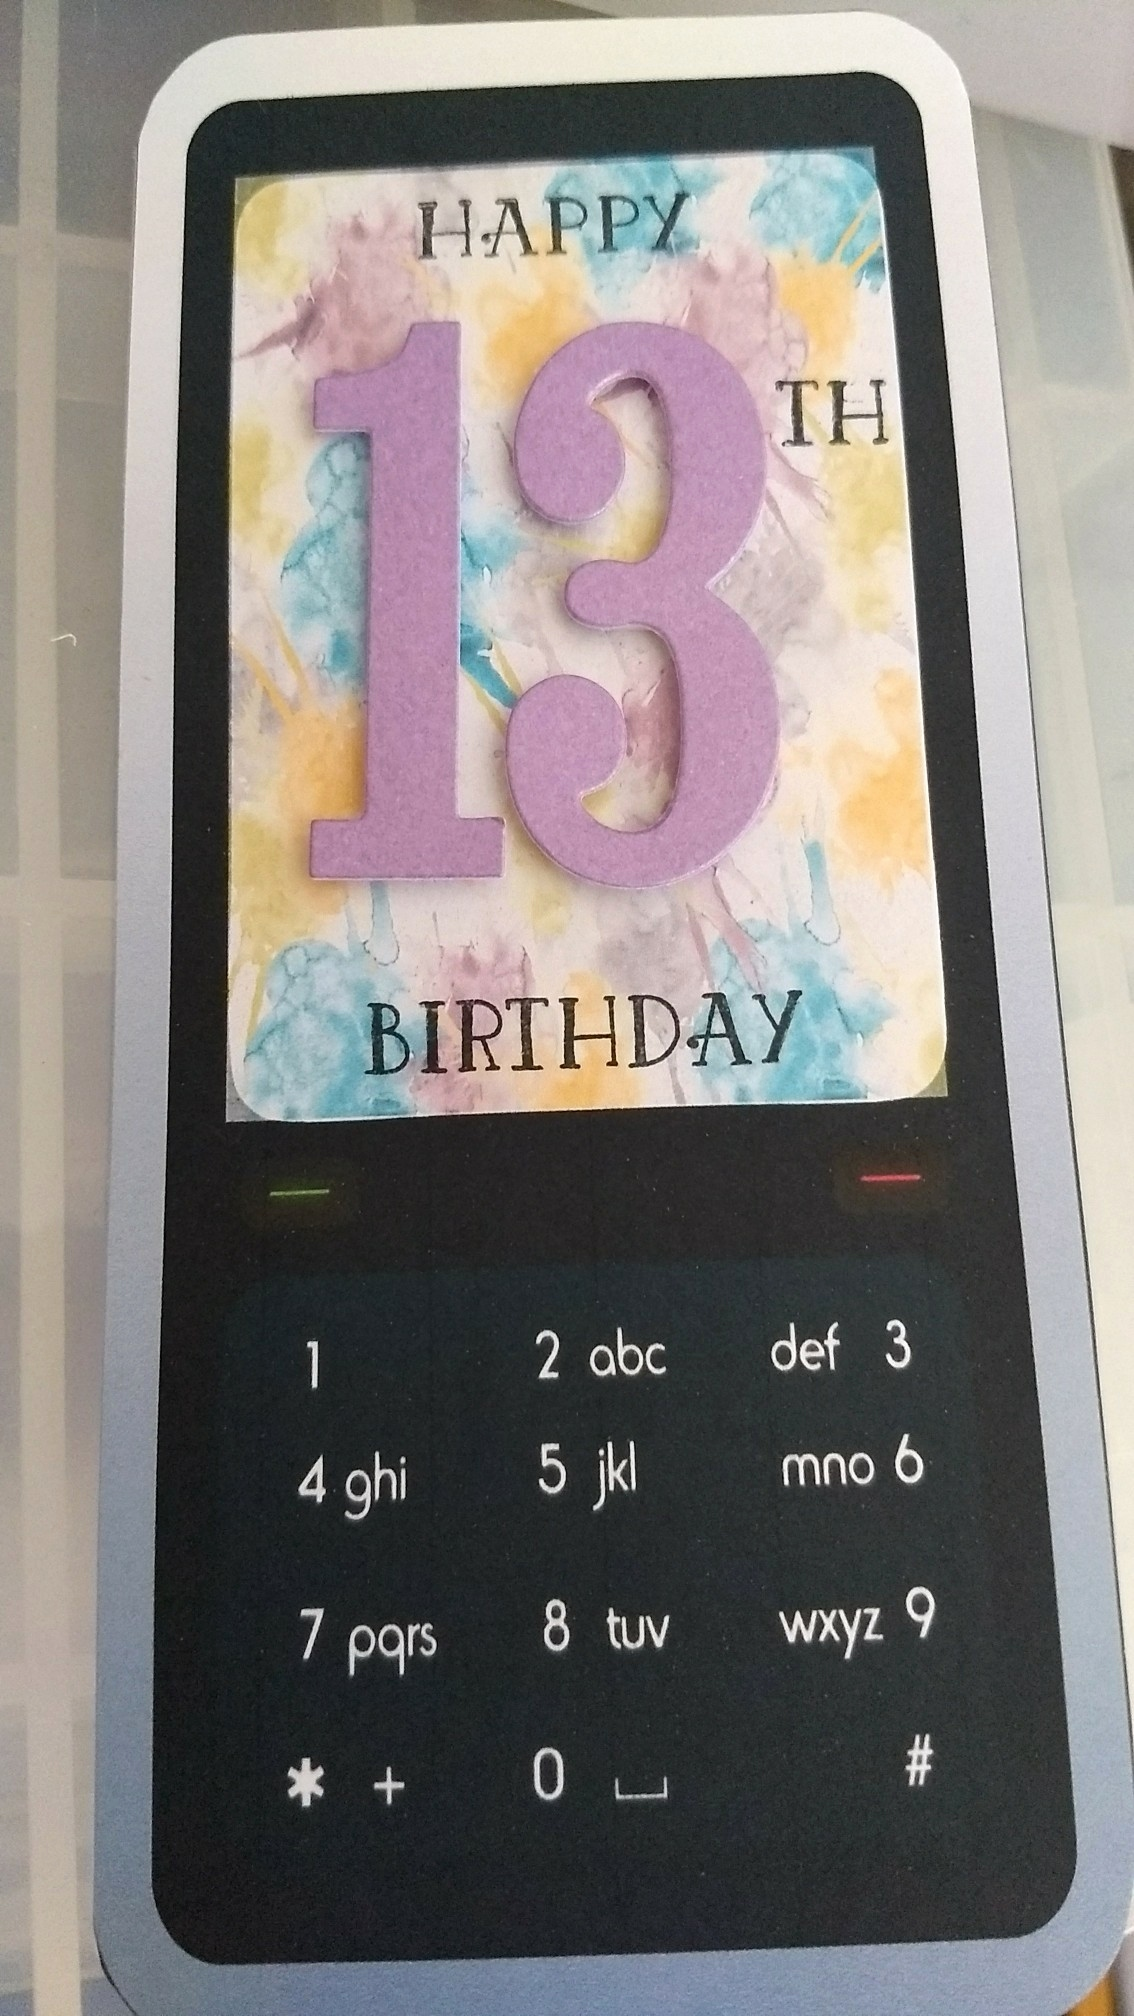 send birthday card to cell phone ; send-birthday-card-to-cell-phone-inspirational-best-mobile-birthday-cards-pics-eccleshallfc-of-send-birthday-card-to-cell-phone